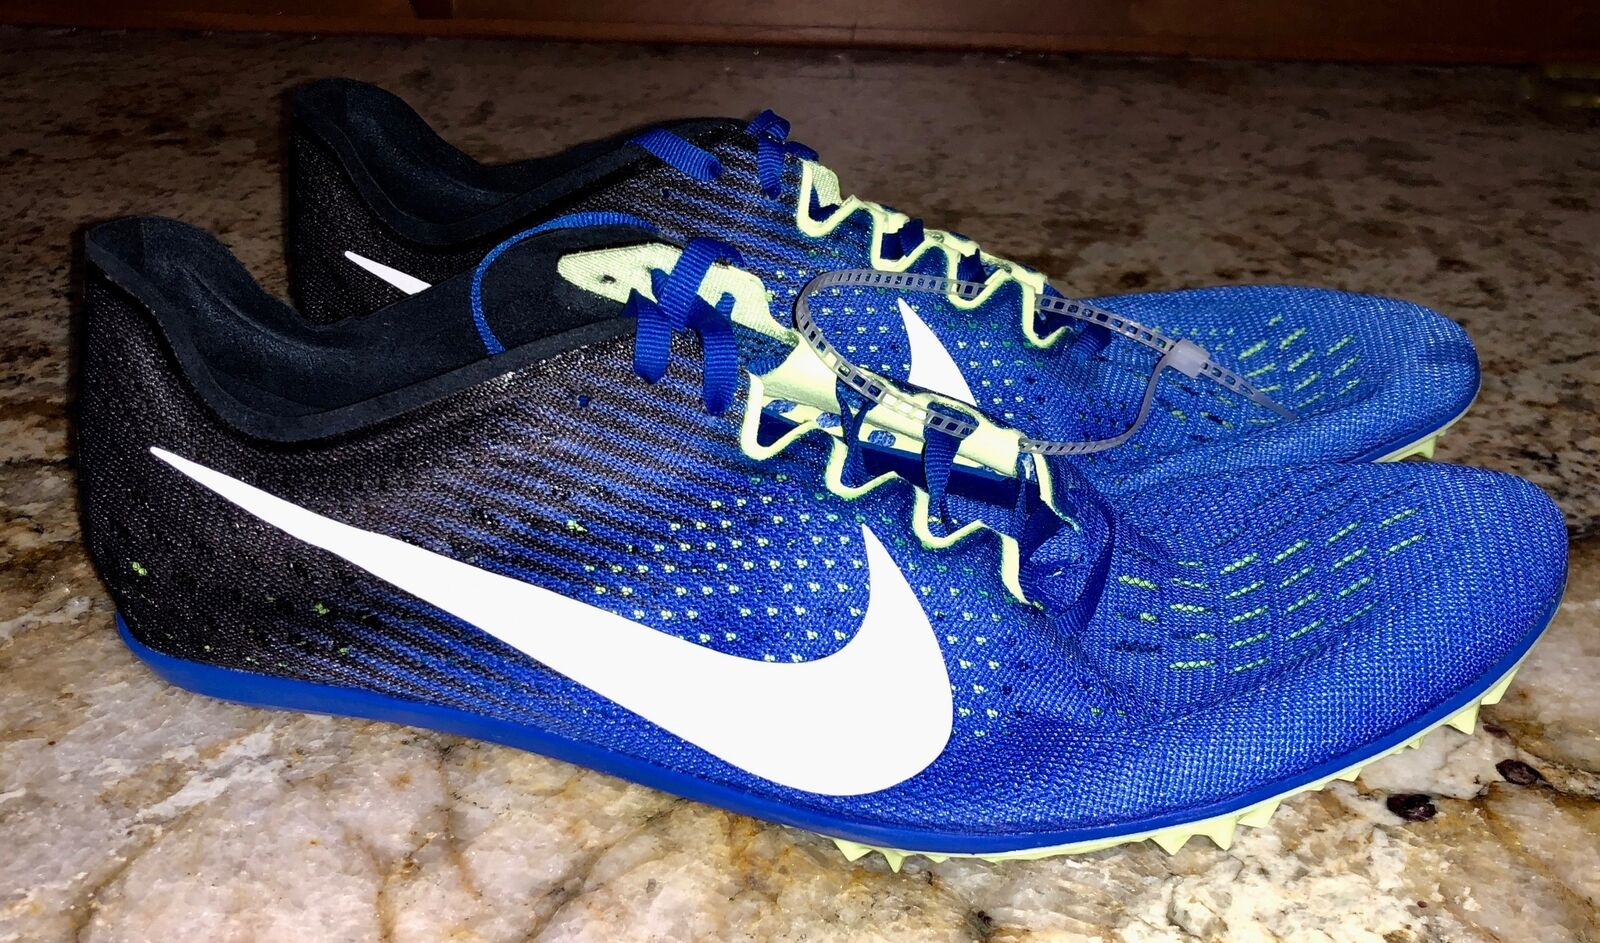 NIKE Zoom Victory Victory Victory 3 Cobalt bluee White Mid Distance Track Spikes shoes Mens Sz 12 a69cec